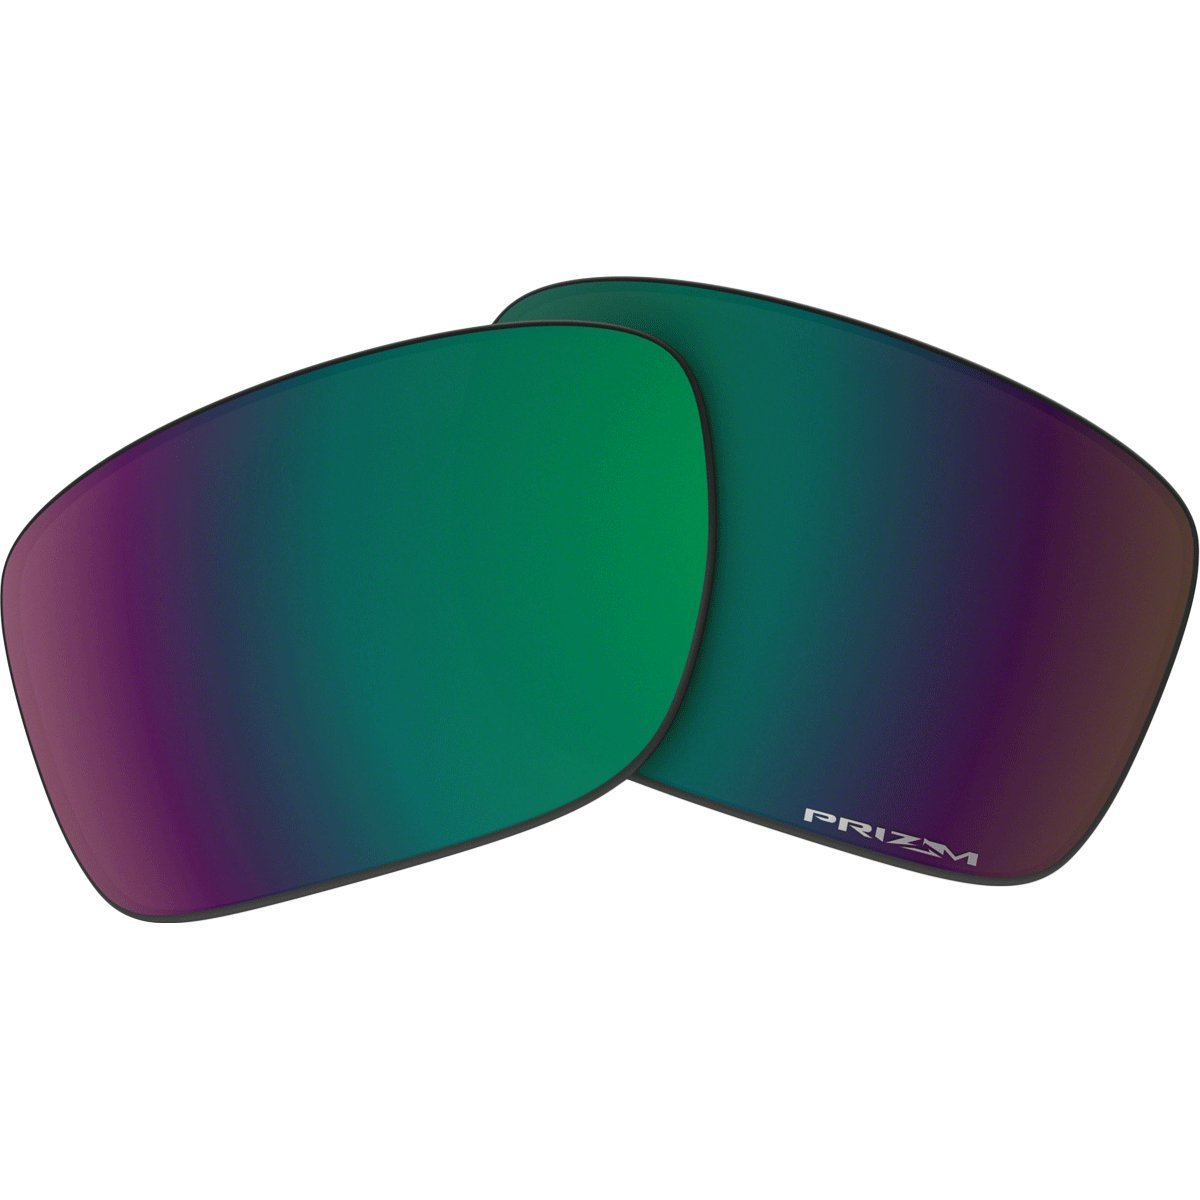 Oakley Turbine Lens Sunglass Accessories by Oakley